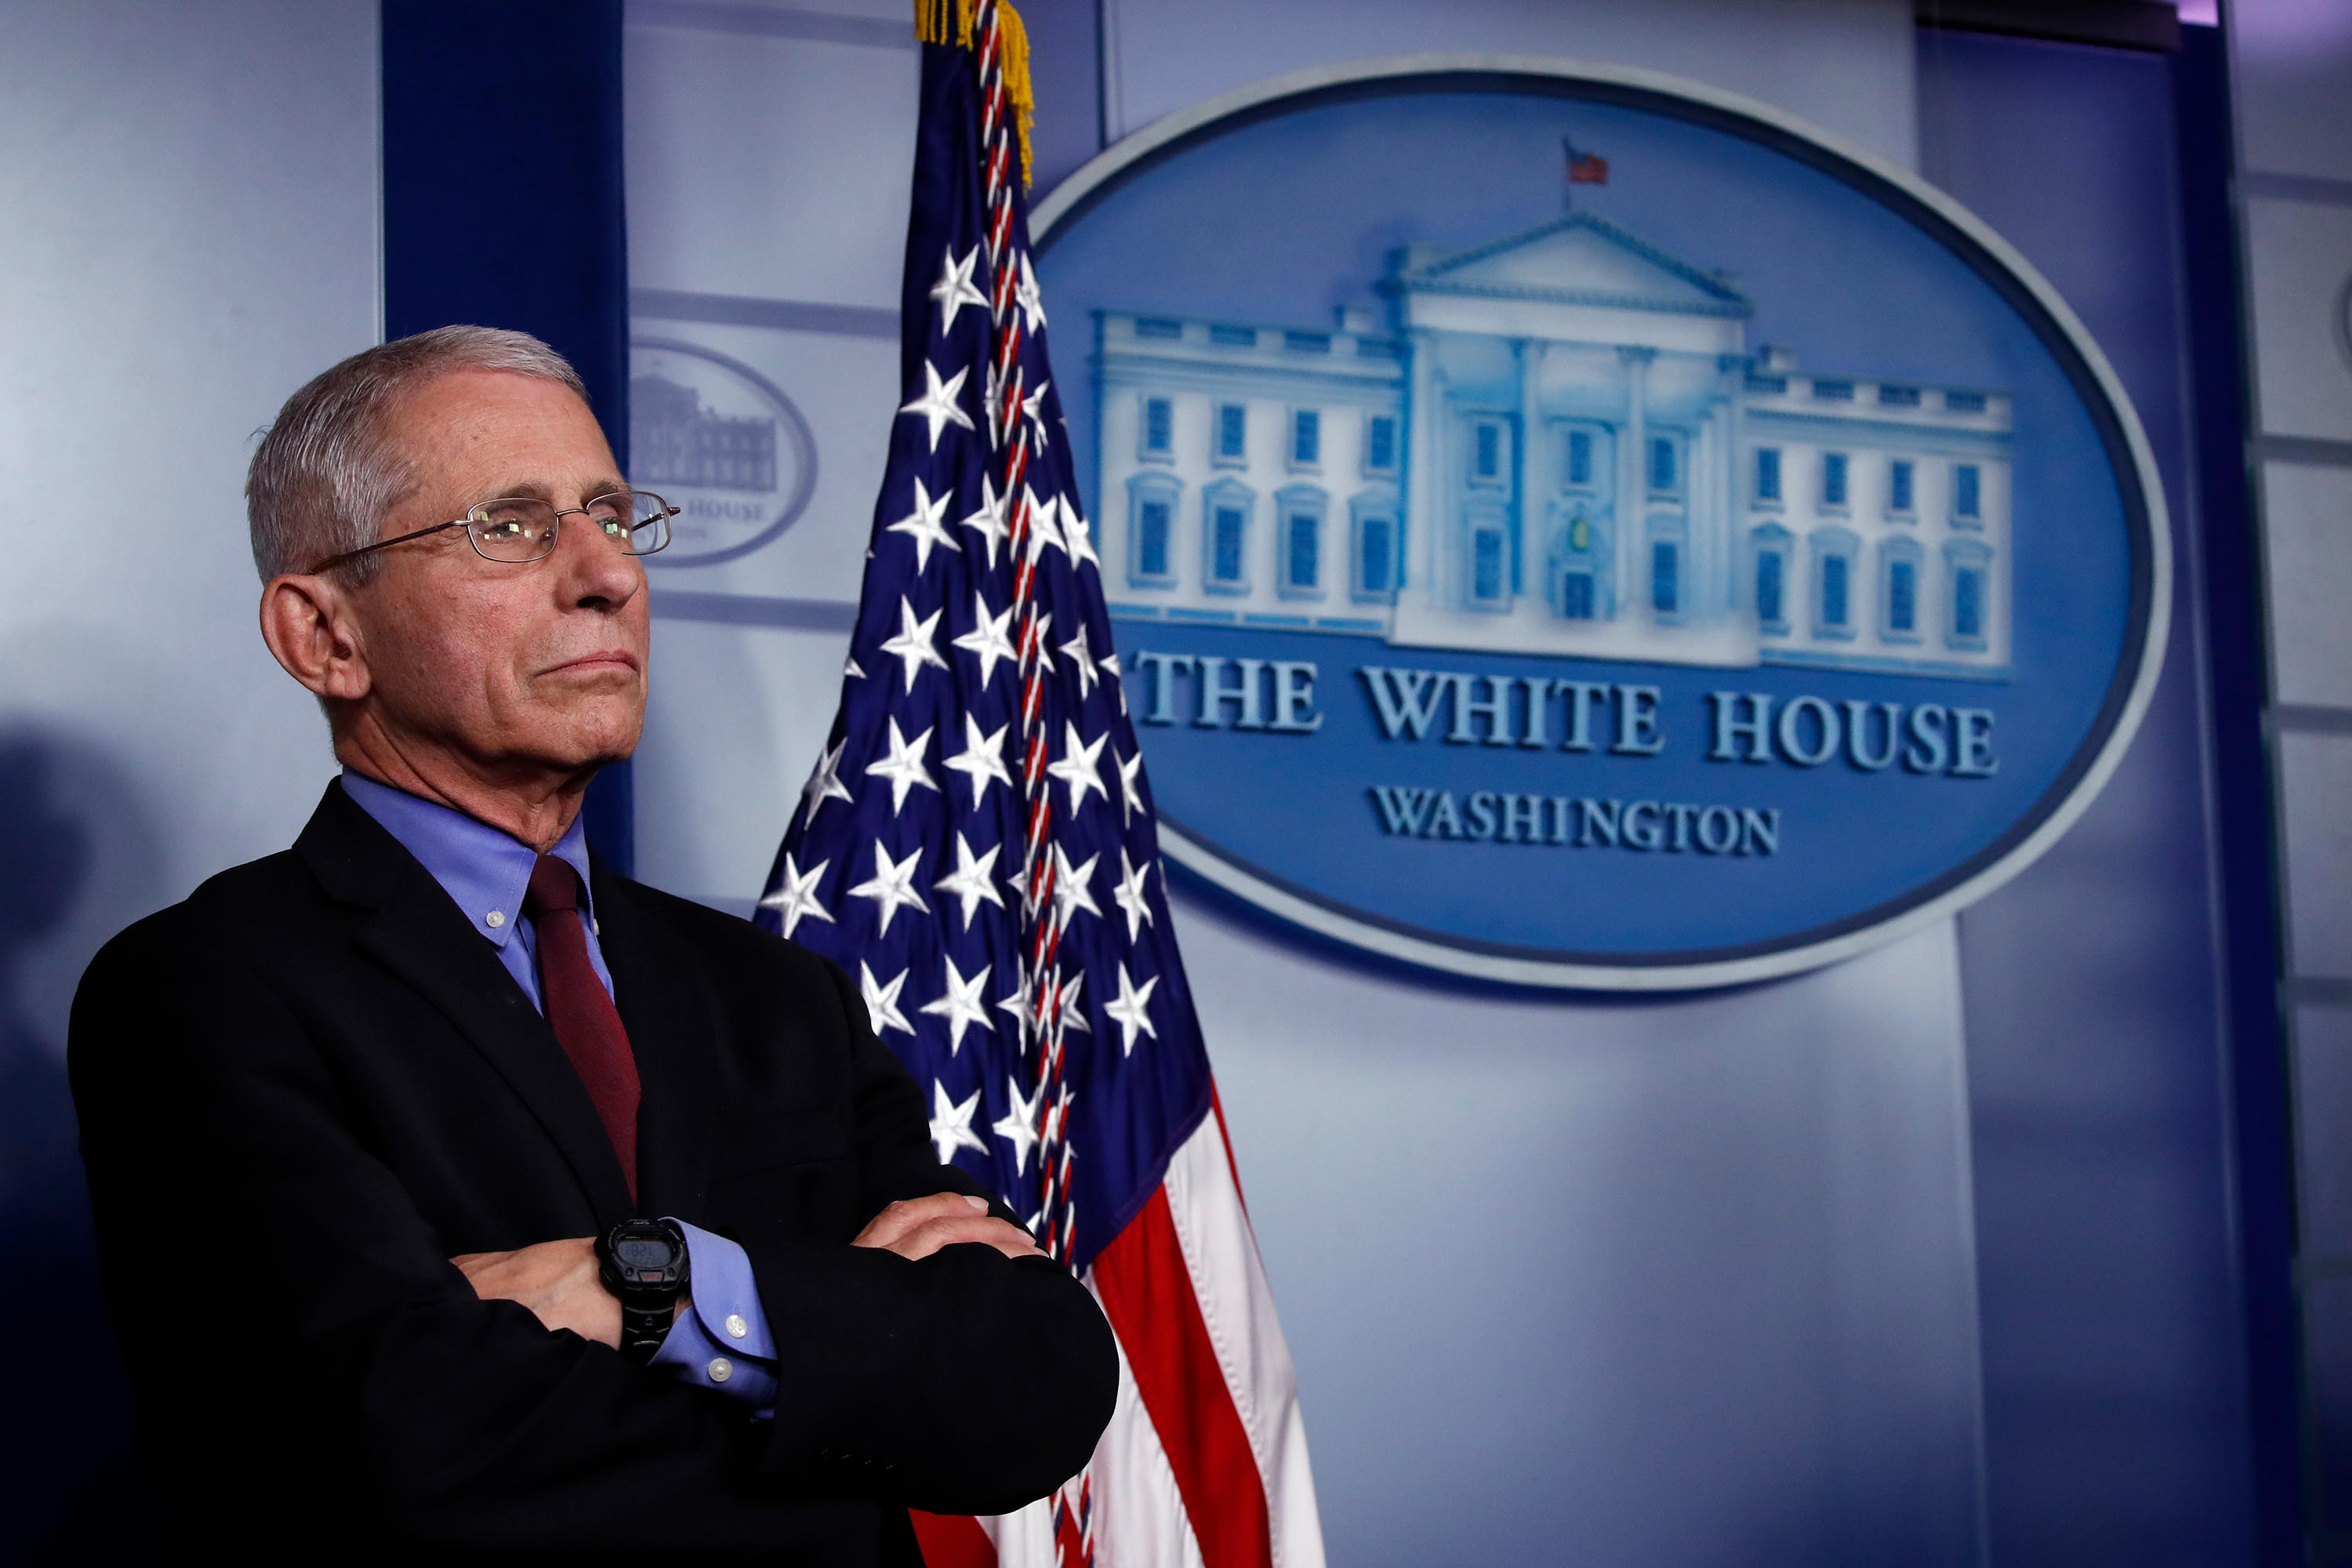 Fauci: US is 'struggling' to get coronavirus under control and to say otherwise would be wrong